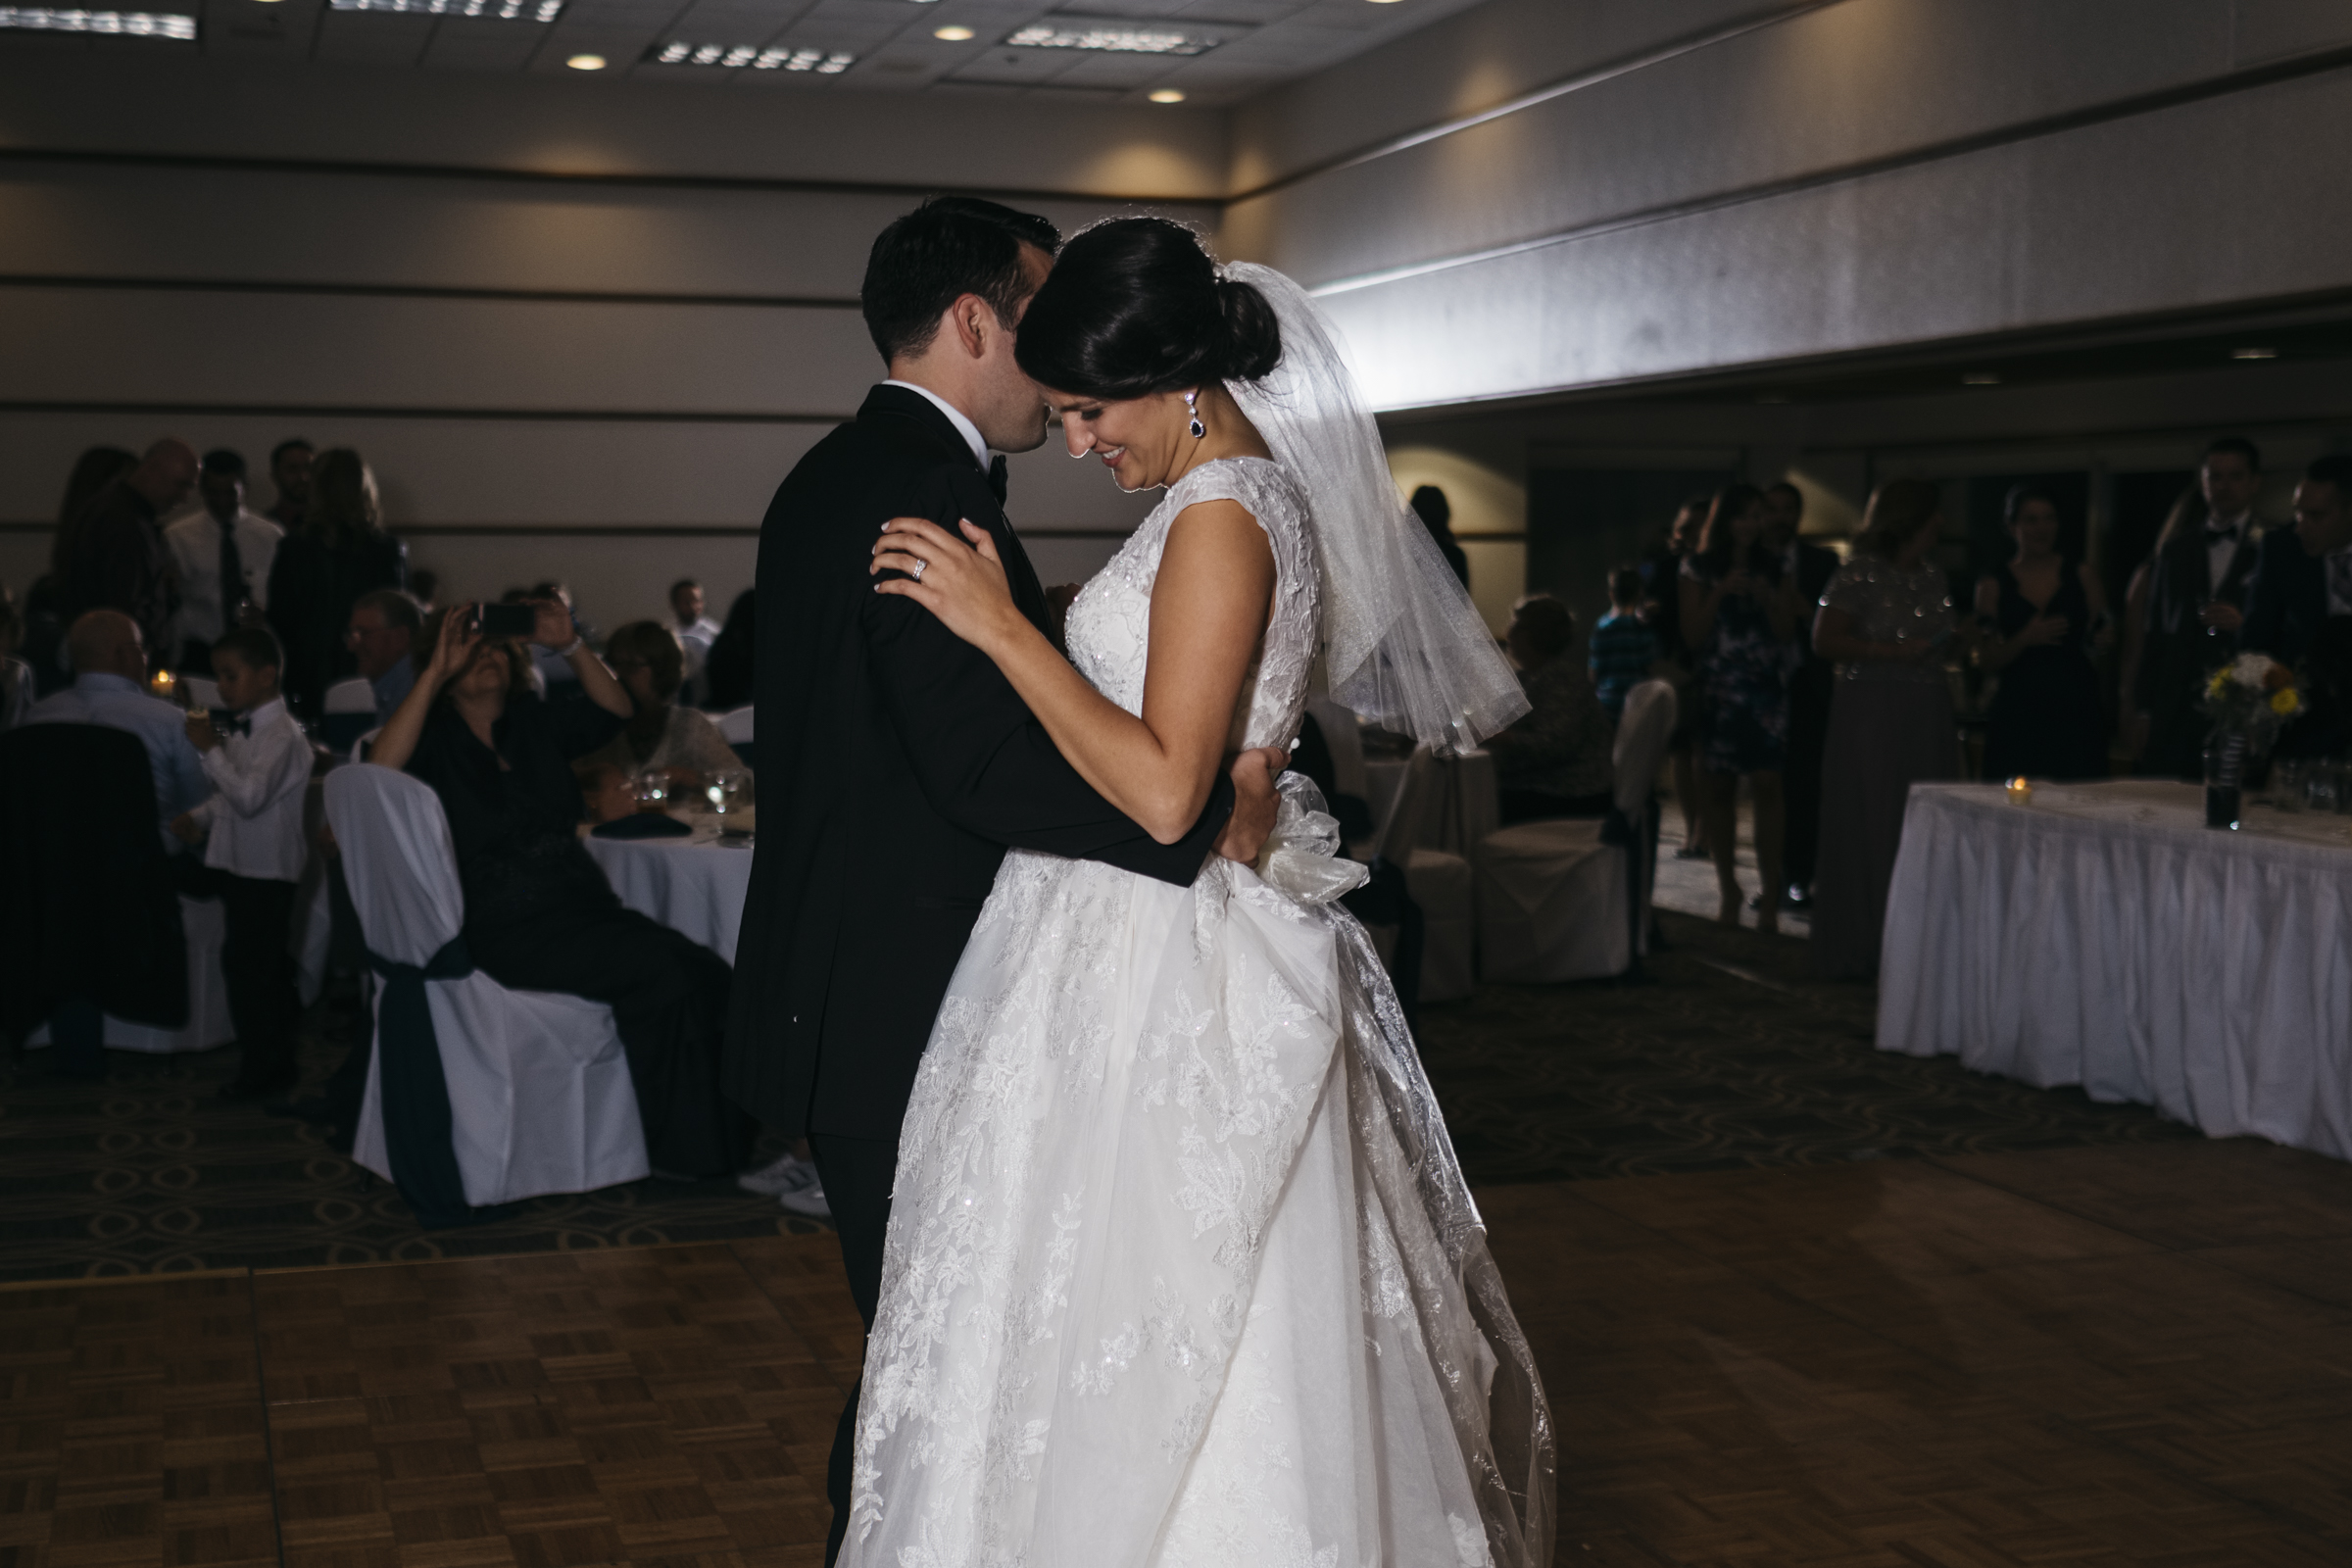 Bride dances with her new husband at their wedding reception in Toledo Ohio